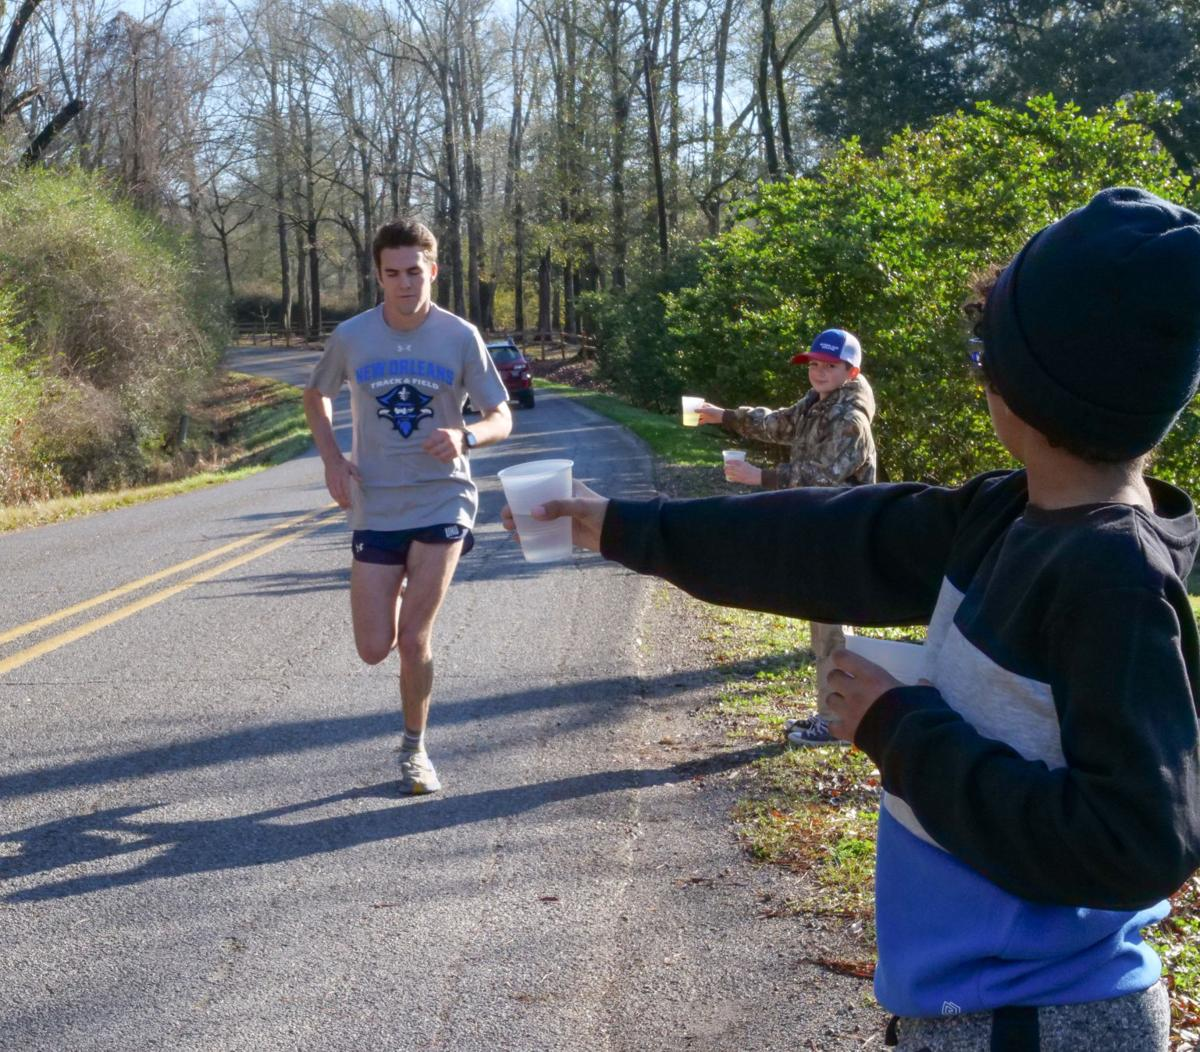 Club South Runners fundraiser for WFHS cross country team01.JPG